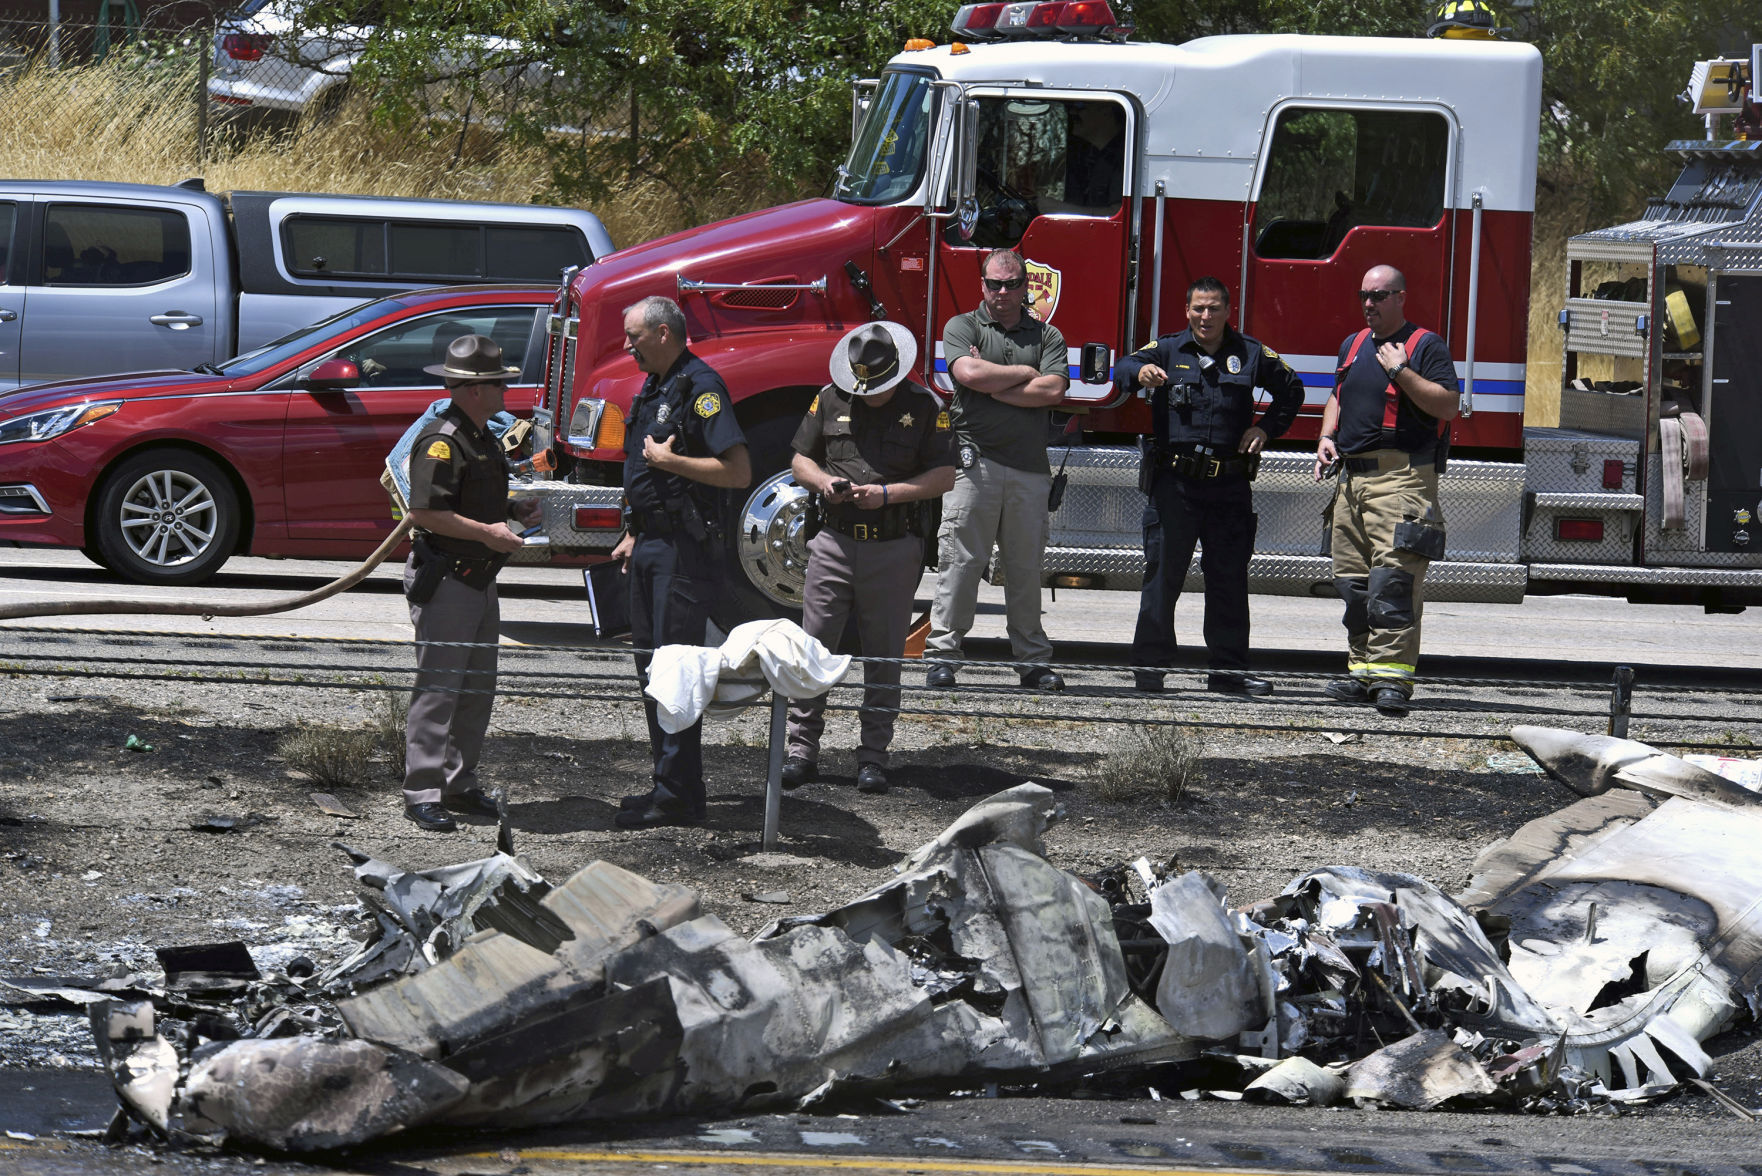 Four killed in small plane crash outside Salt Lake City